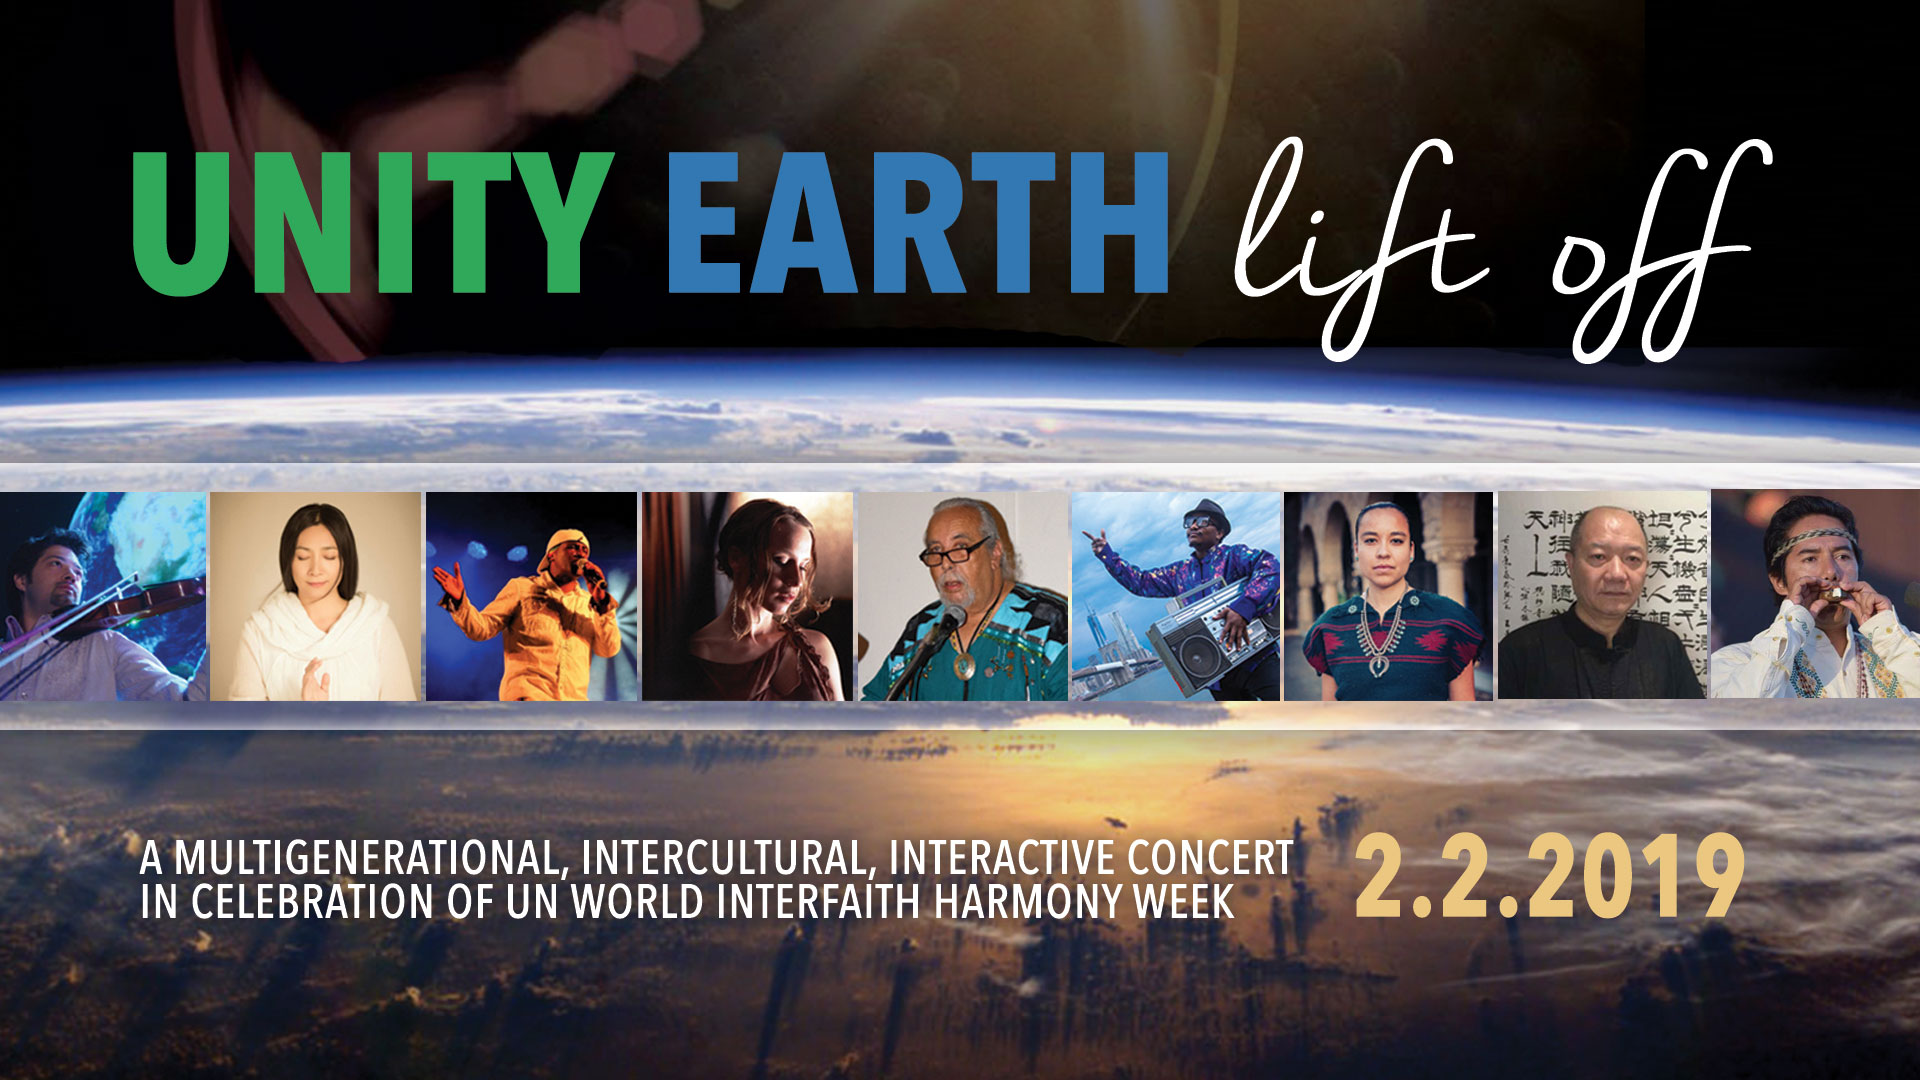 UNITY EARTH LIFT OFF NYC